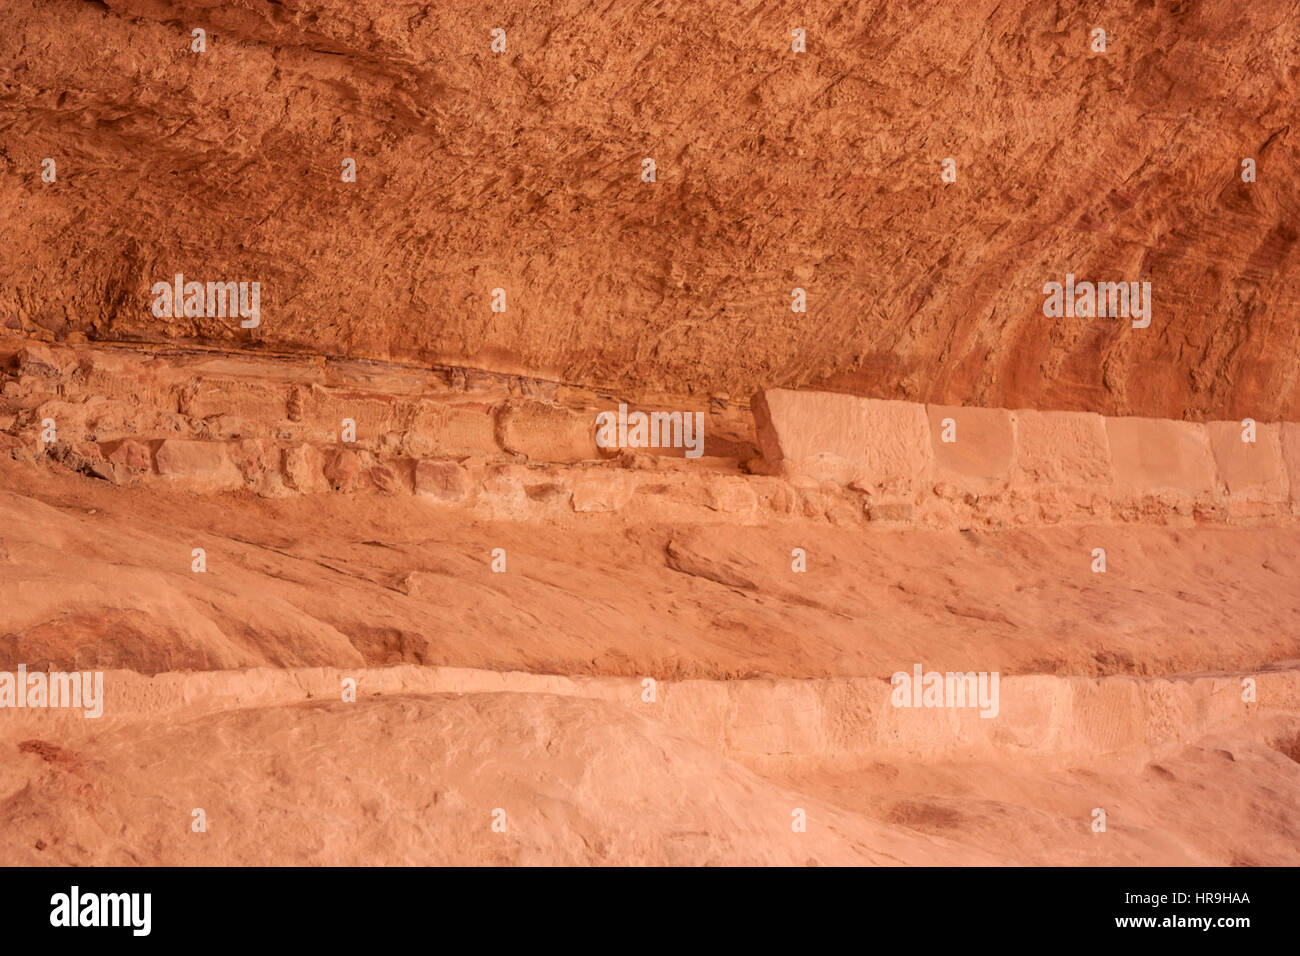 Remains of water supply system in Petra, Jordan - Stock Image